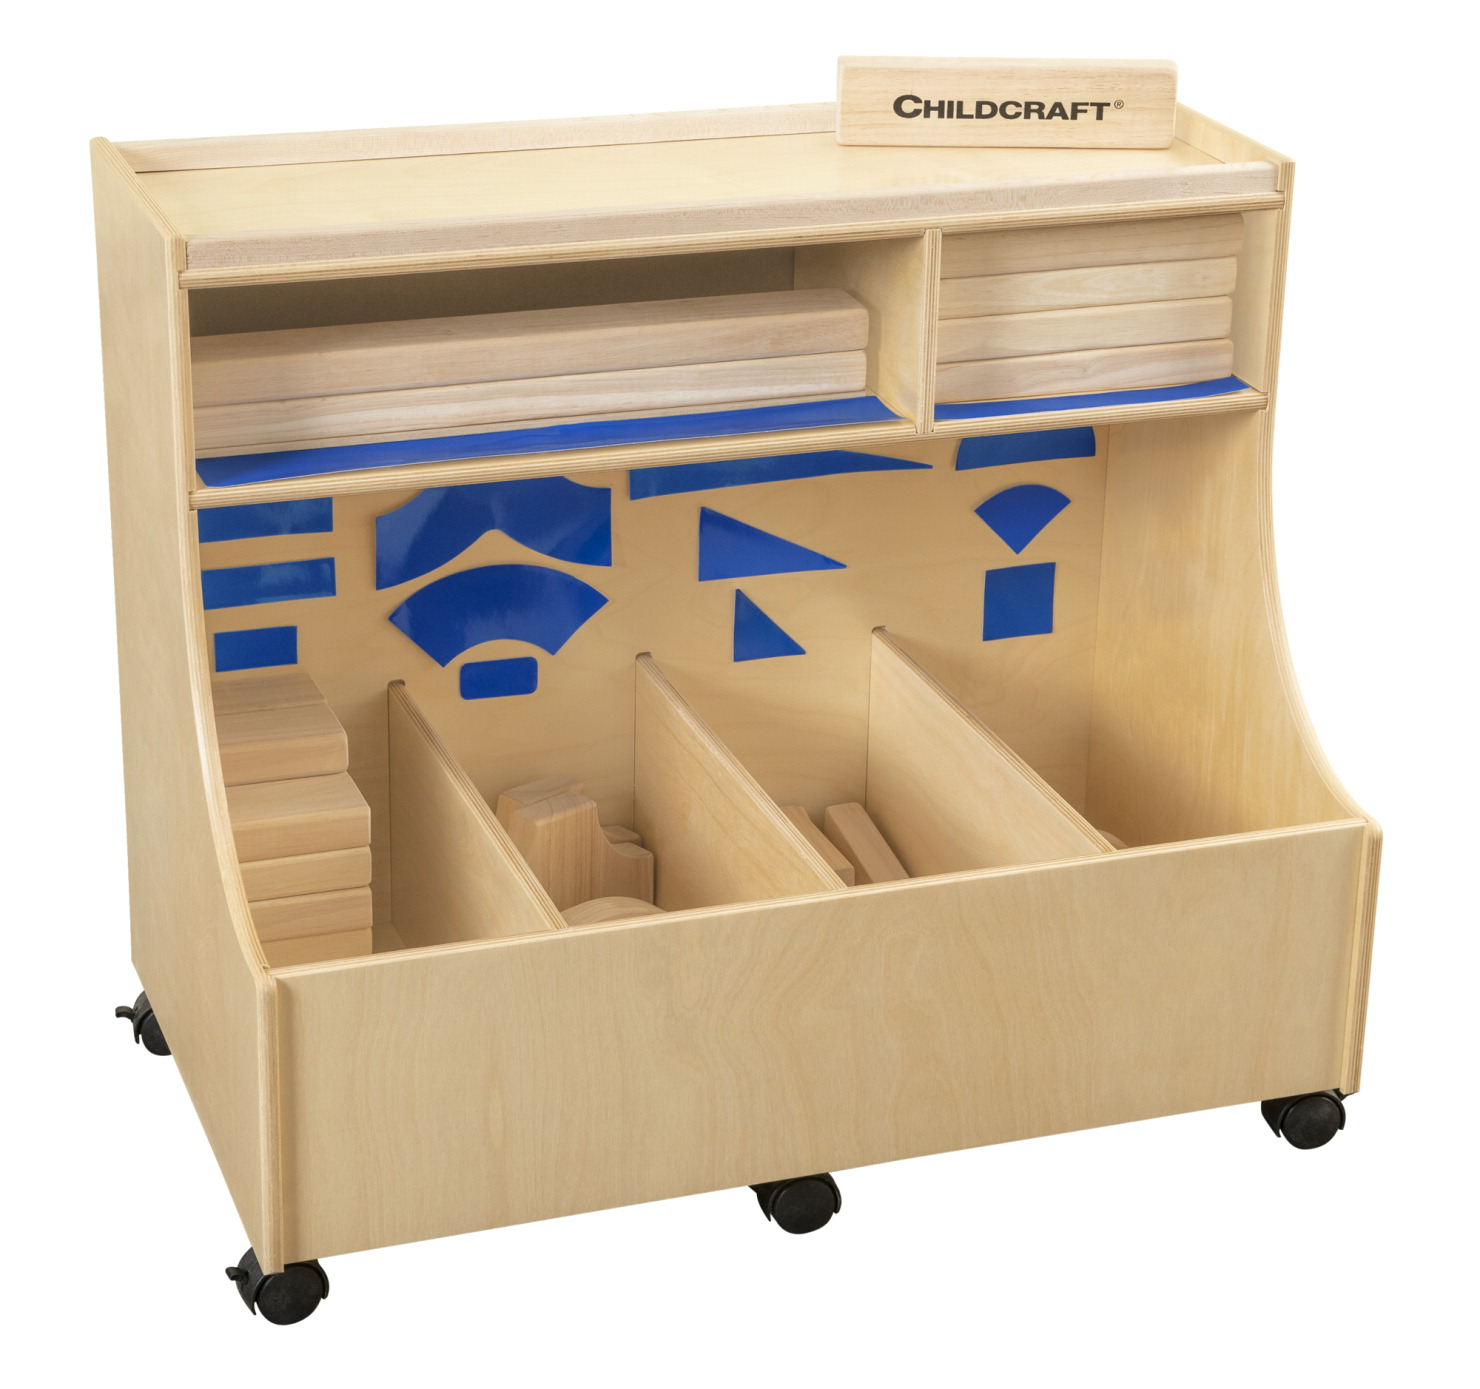 Childcraft Block Storage Unit with Blue Adhesives and 100 Blocks